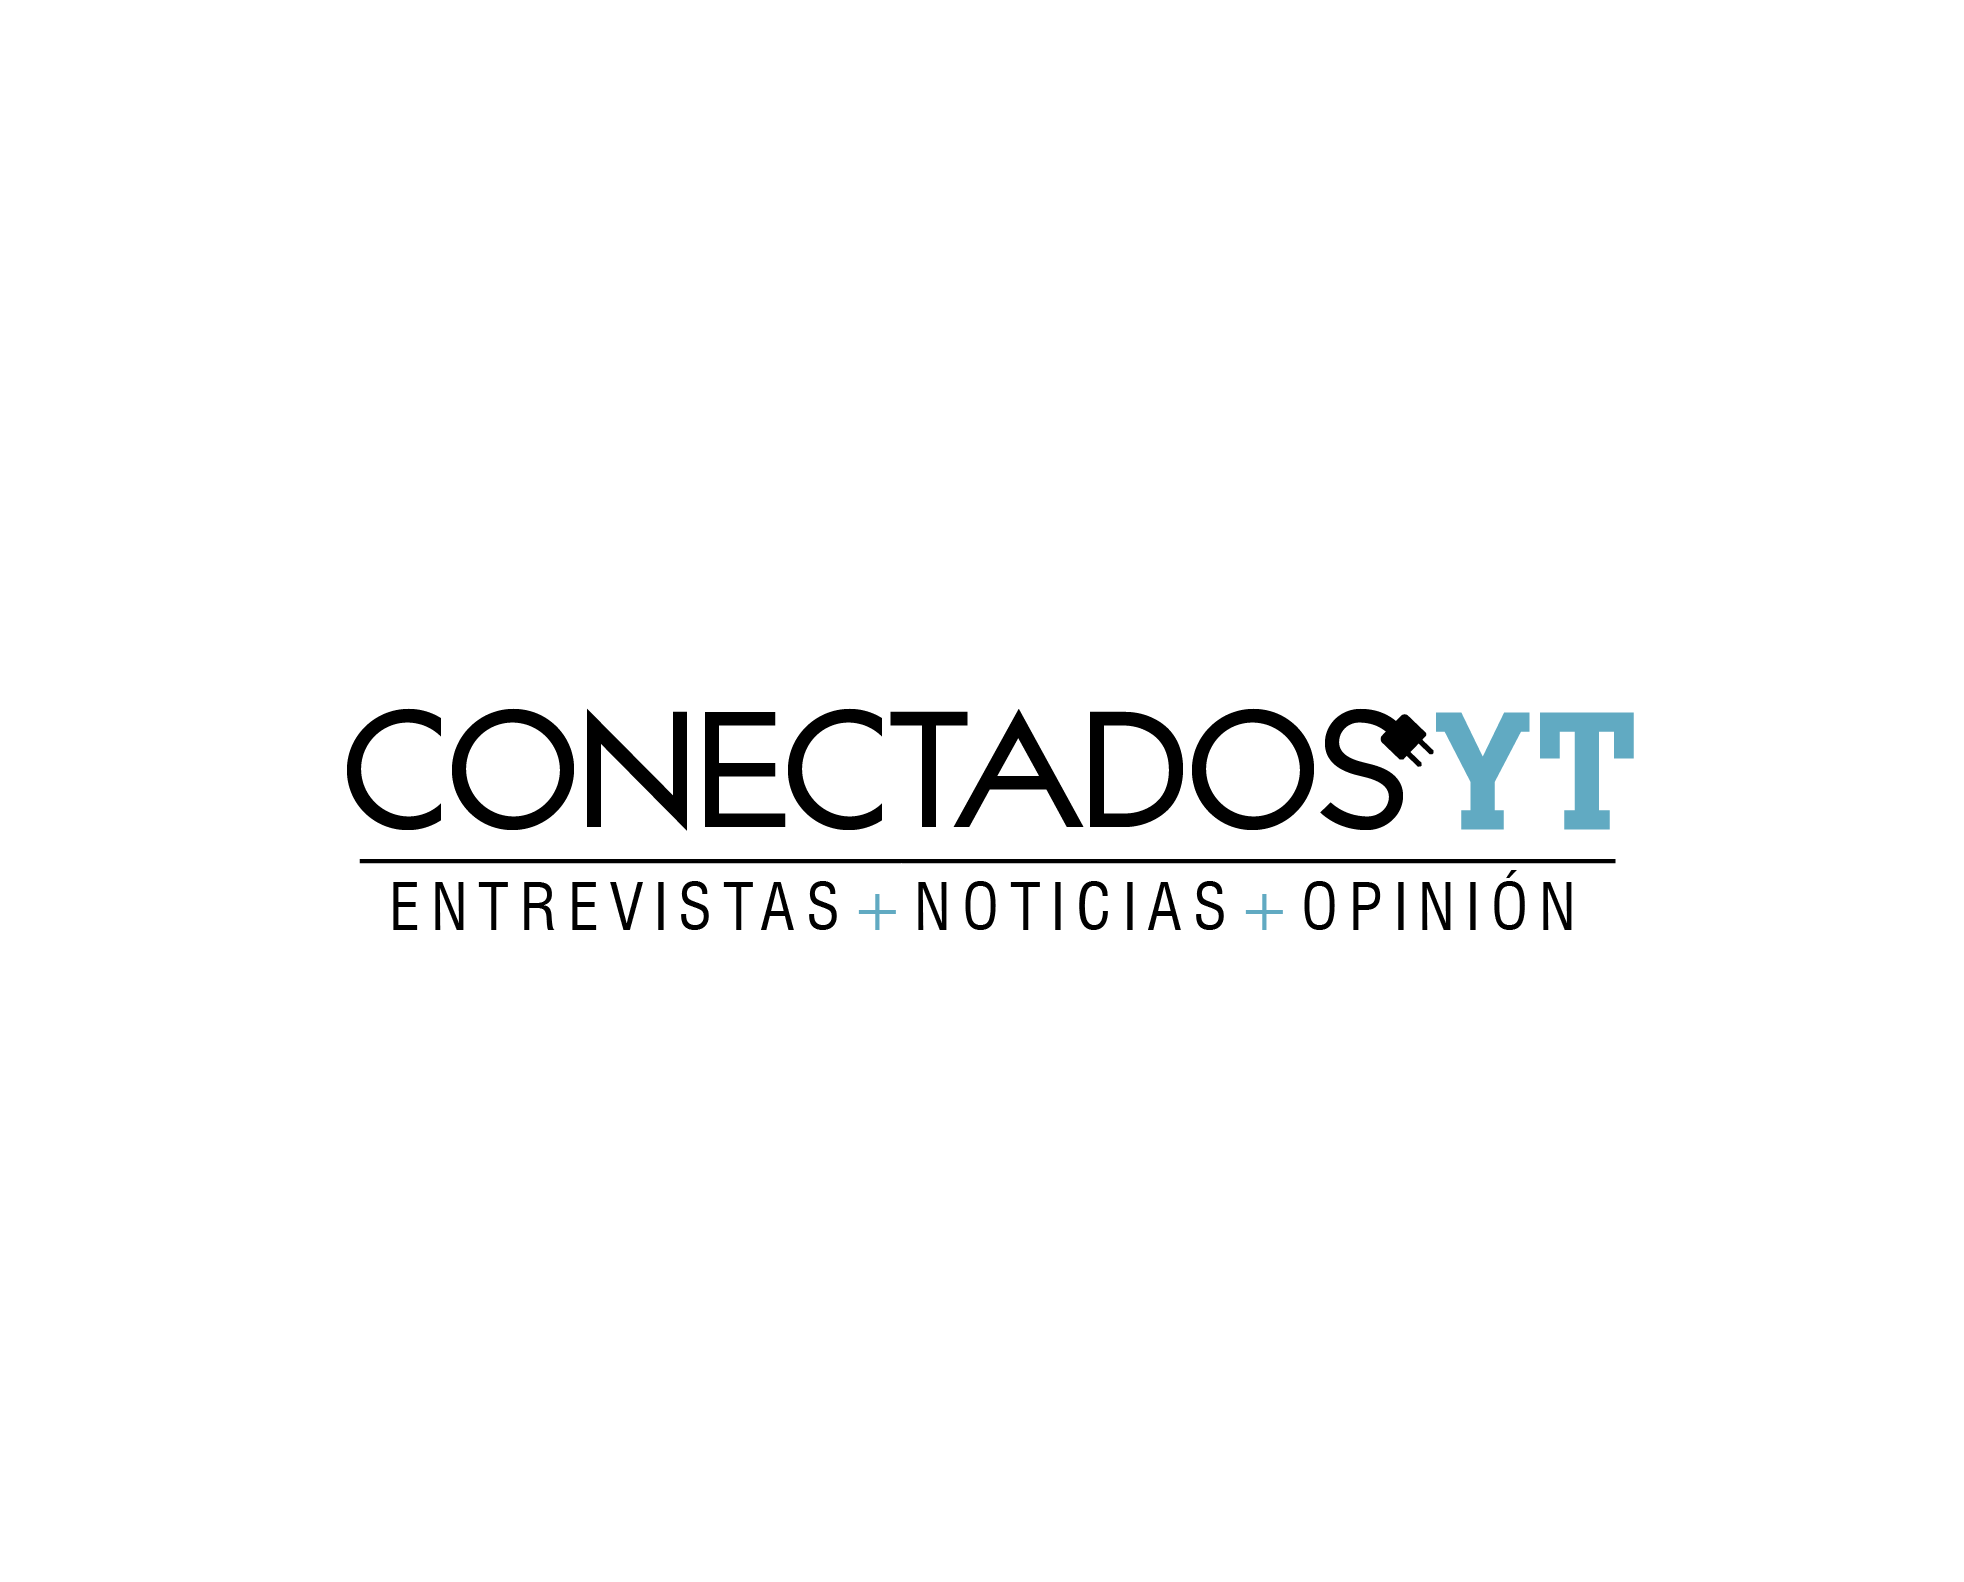 Conectados YT, a new means to bring our community closer